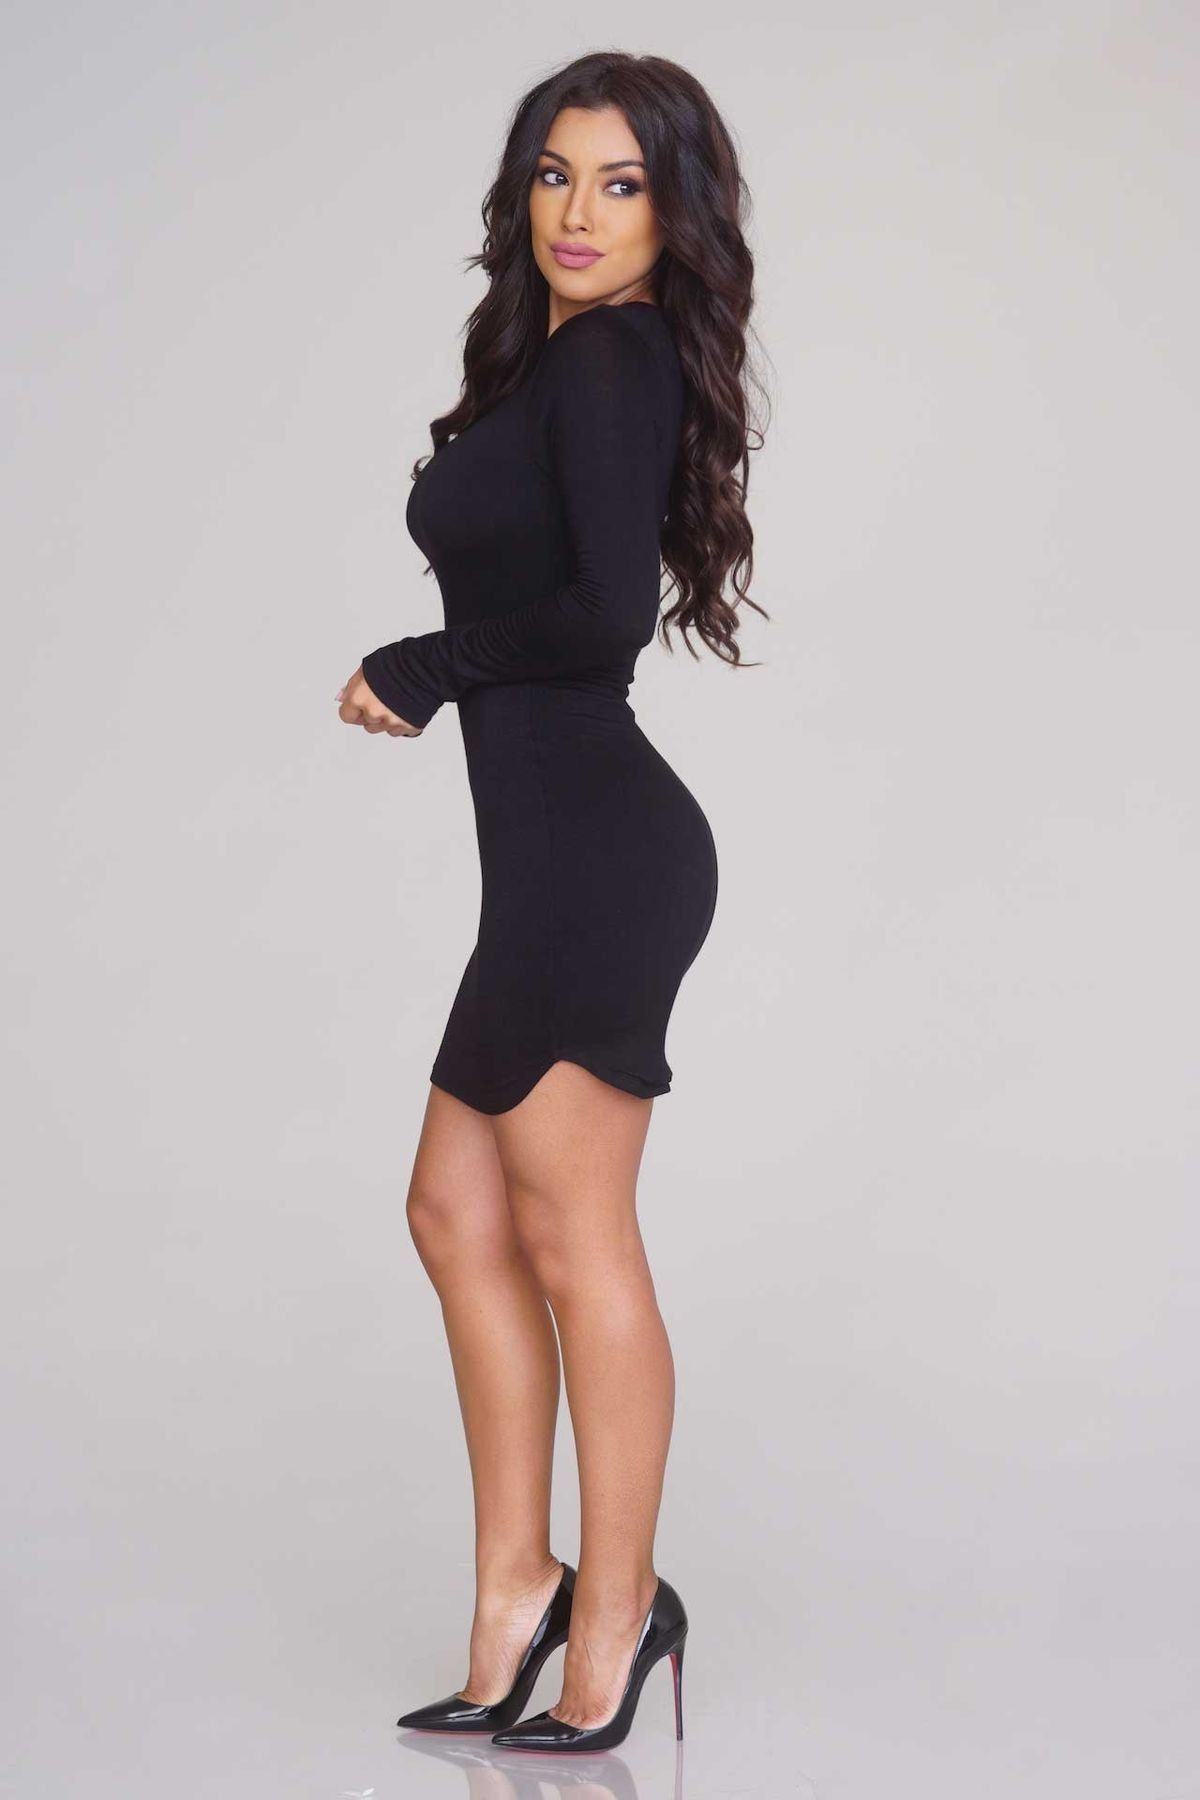 7ed6d7d764b87 Pin by jay on Curvy in 2019 | Dresses, Tight dresses, Black bodycon ...